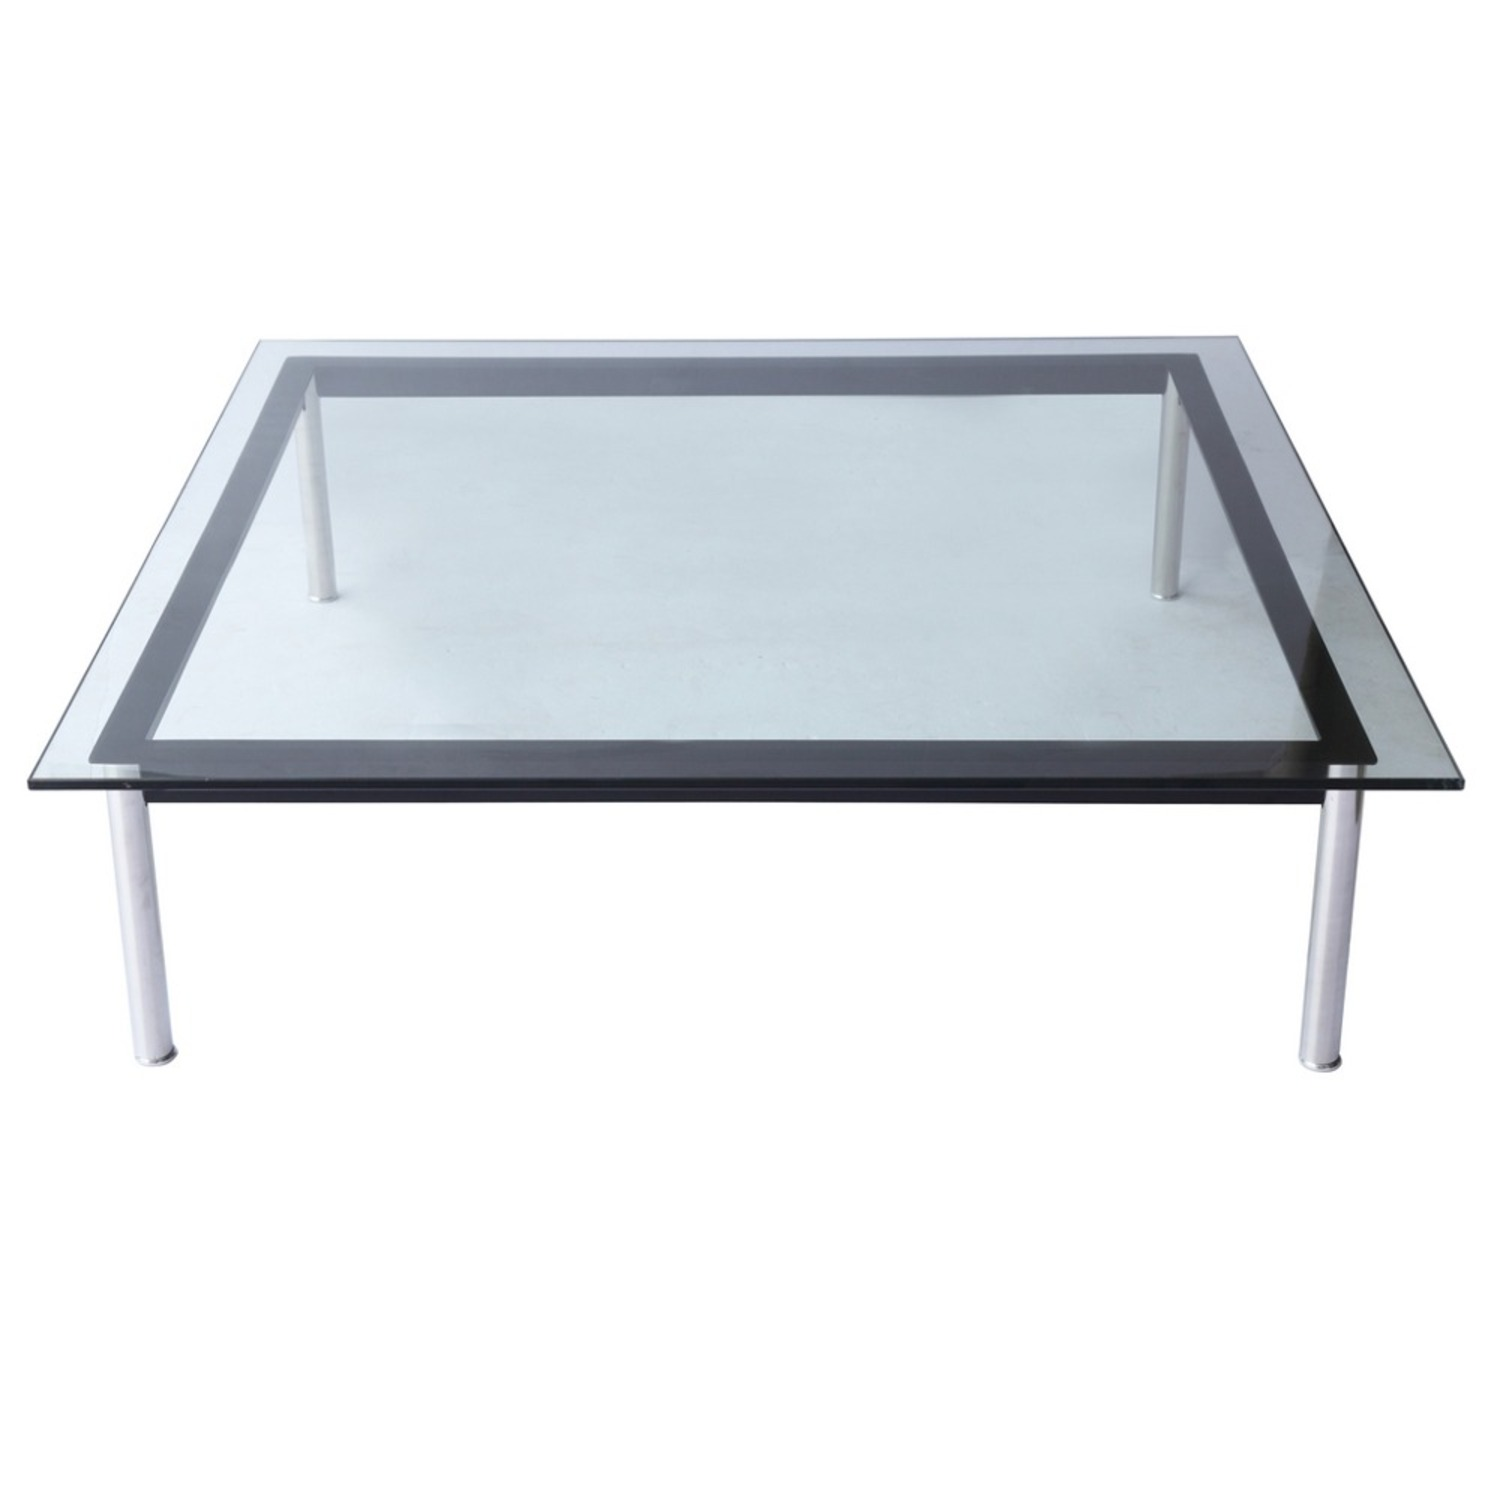 Coffee Table In Clear Chrome Finish W/ Glass Top - image-1